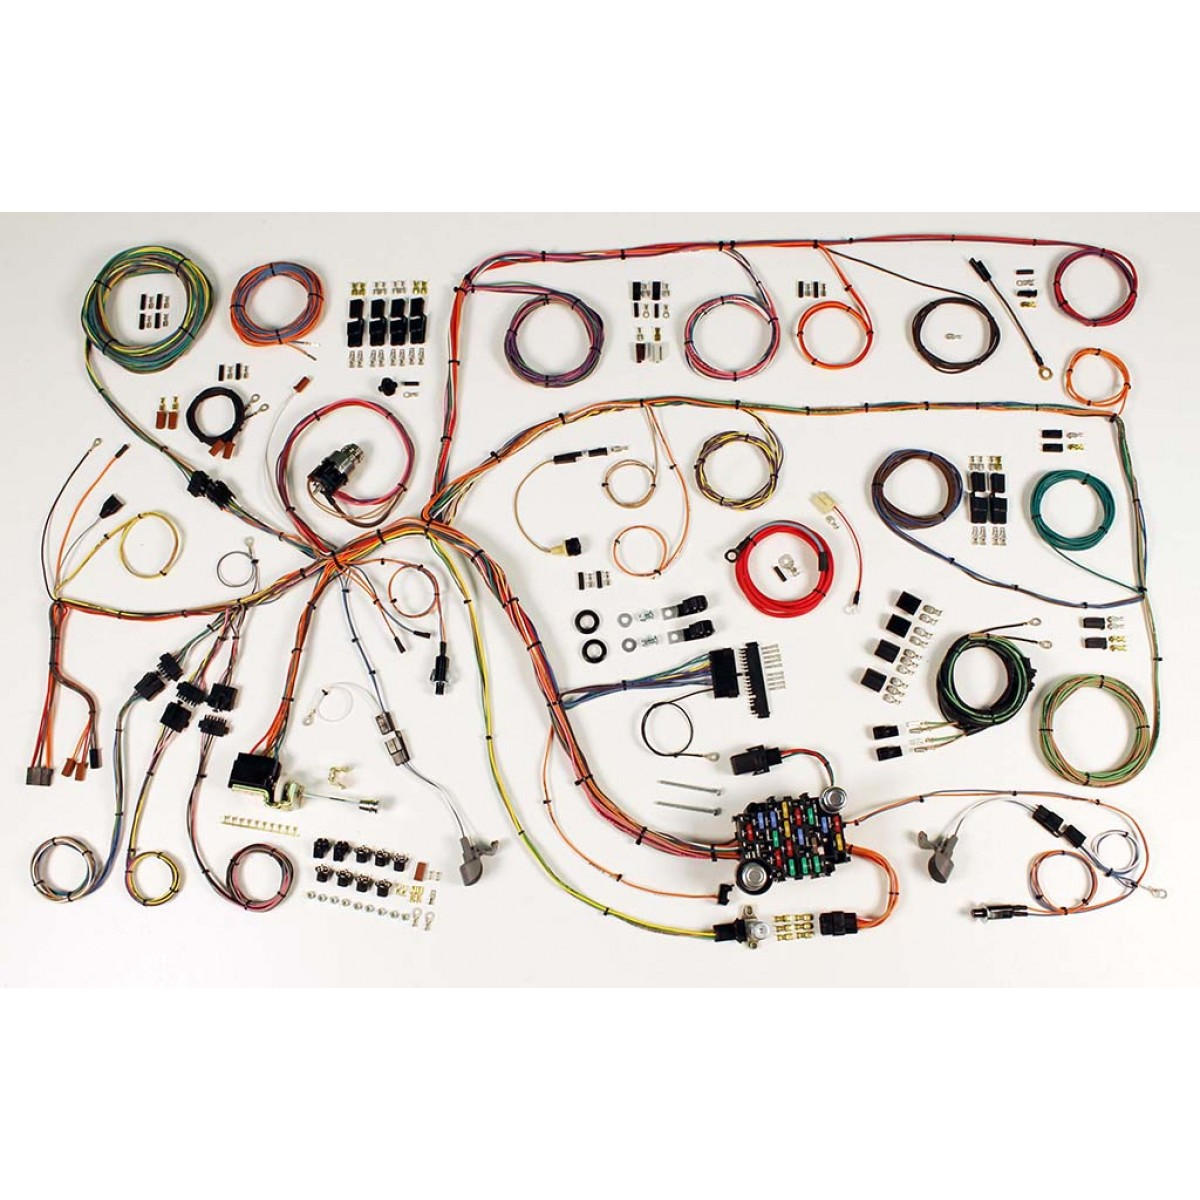 1960 1964 ford falcon complete wiring harness kit 1960 1964 ford rh code510 com  auto wiring harness connector kit